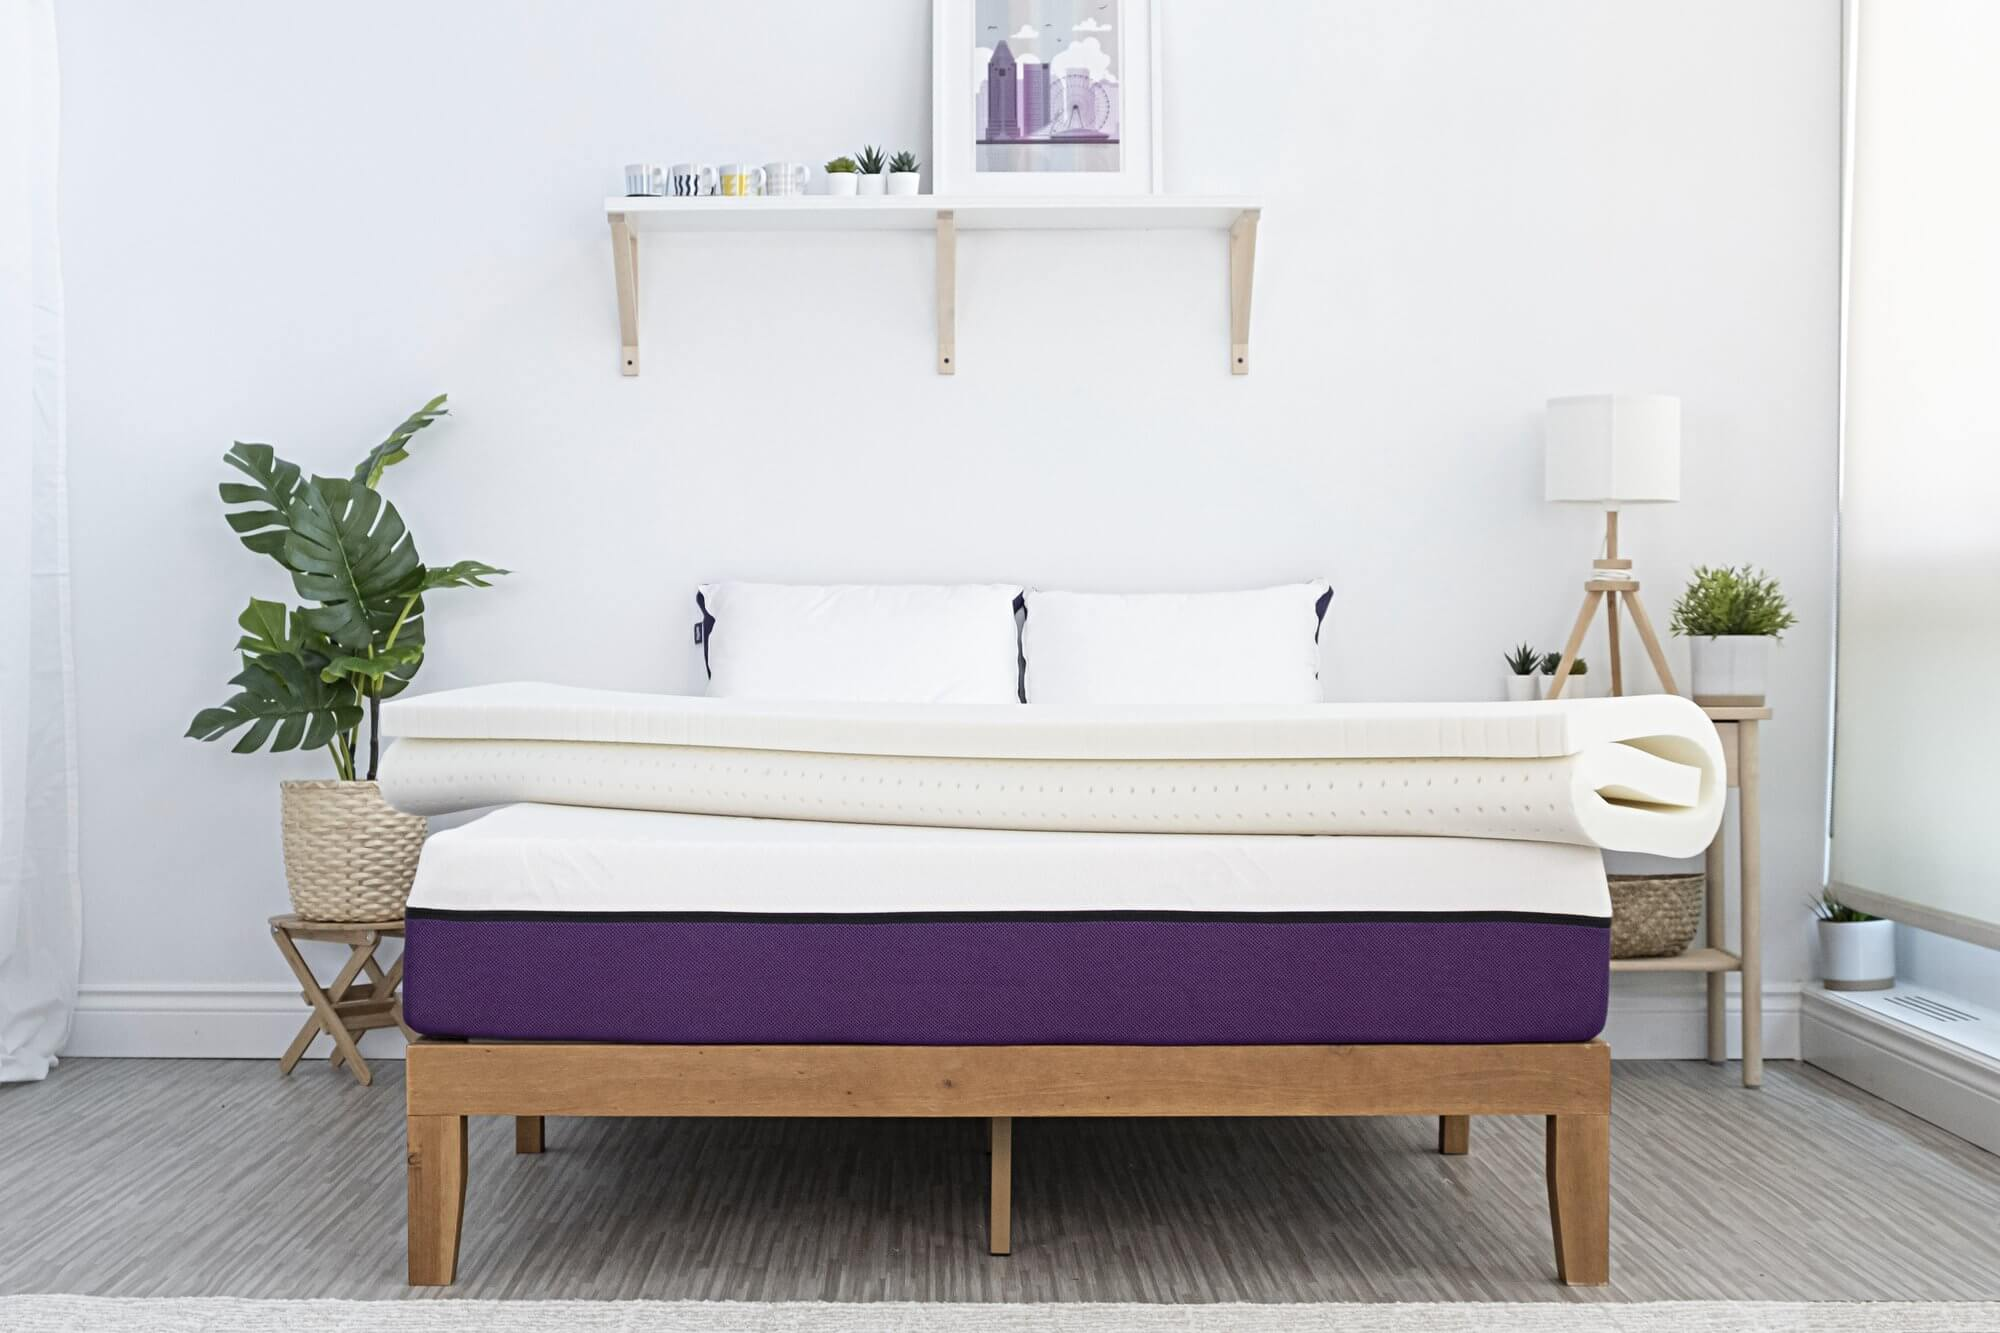 The Polysleep mattress topper fully rolled up on the Polysleep bed